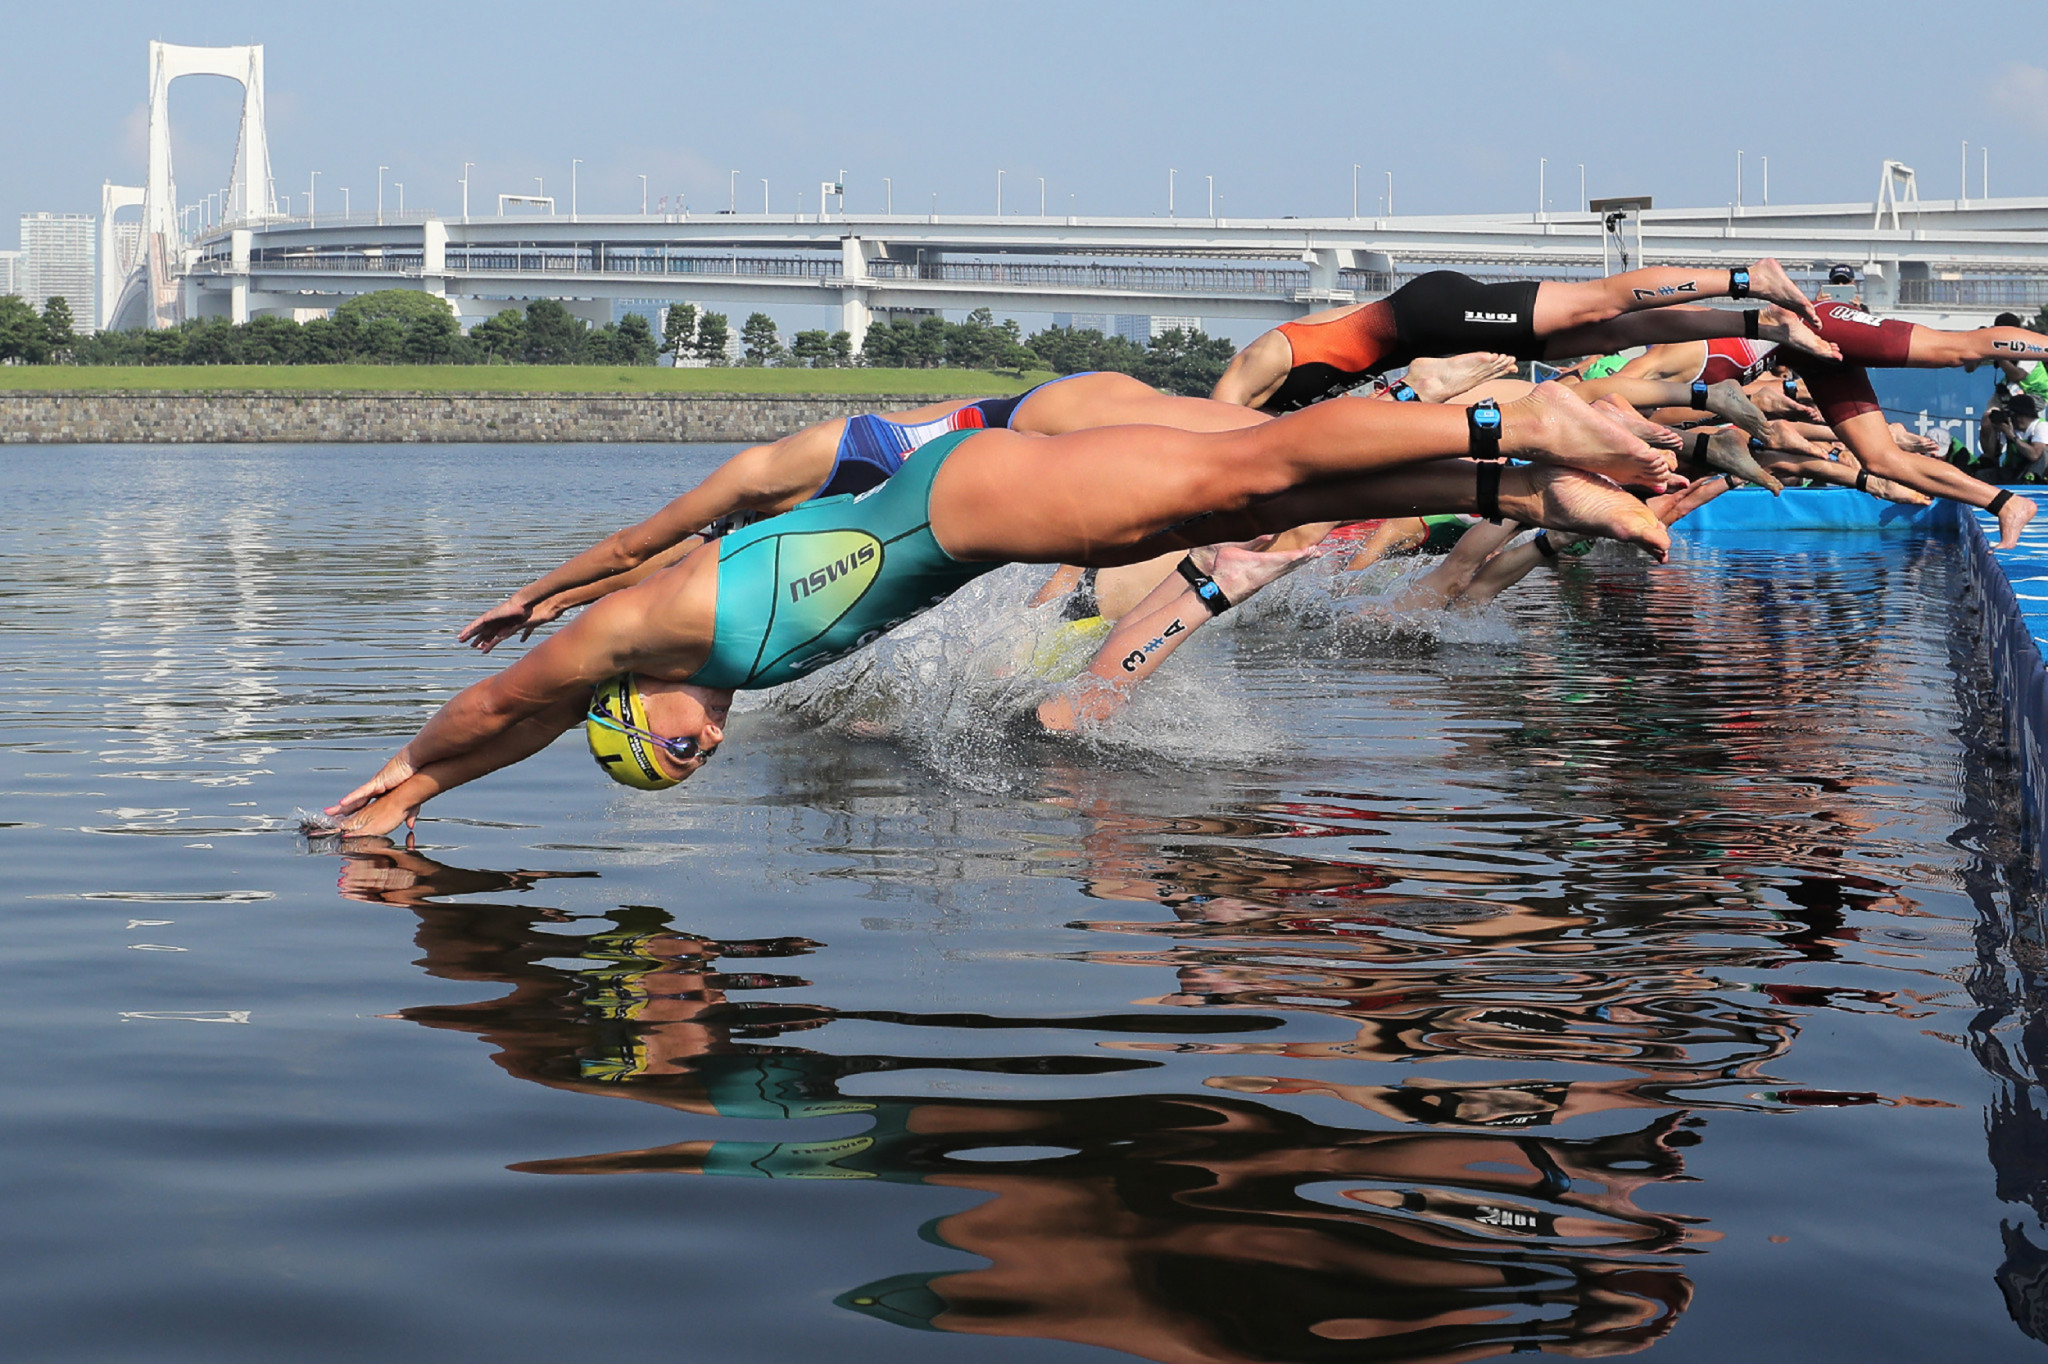 The start time for triathlon competition at the Tokyo 2020 Olympic Games was brought forward last month ©Getty Images